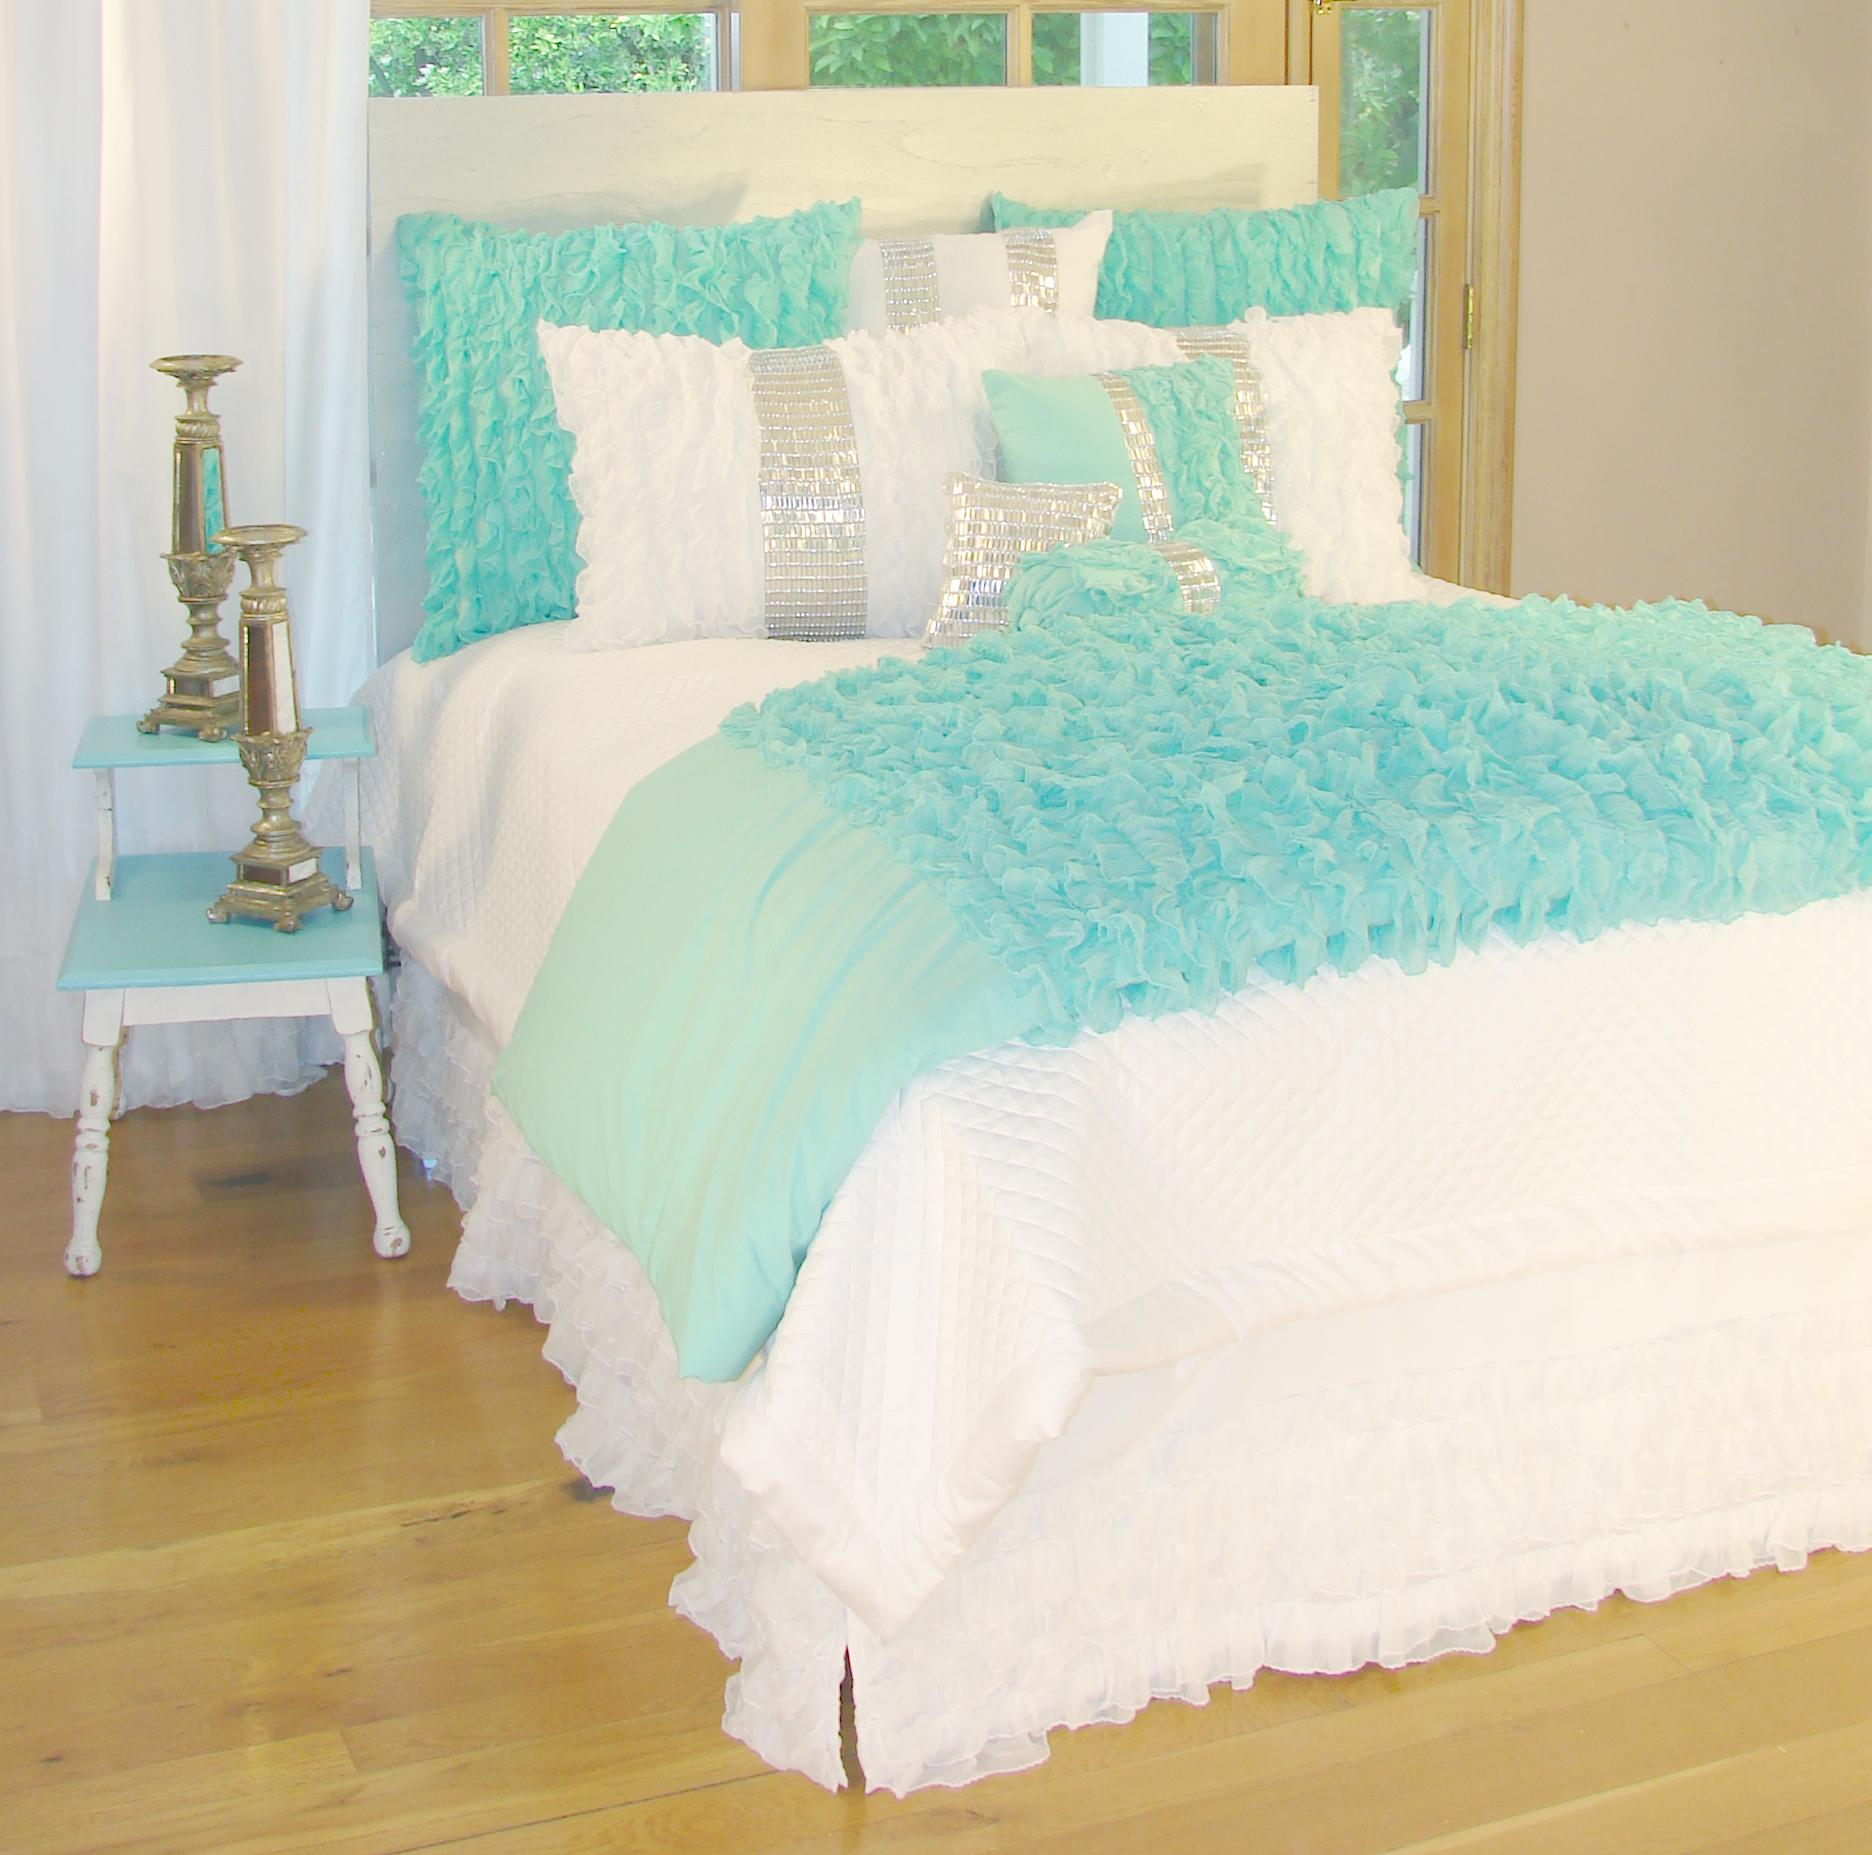 Turquoise bedding and plus turquoise bedding sets and plus turquoise bedspread